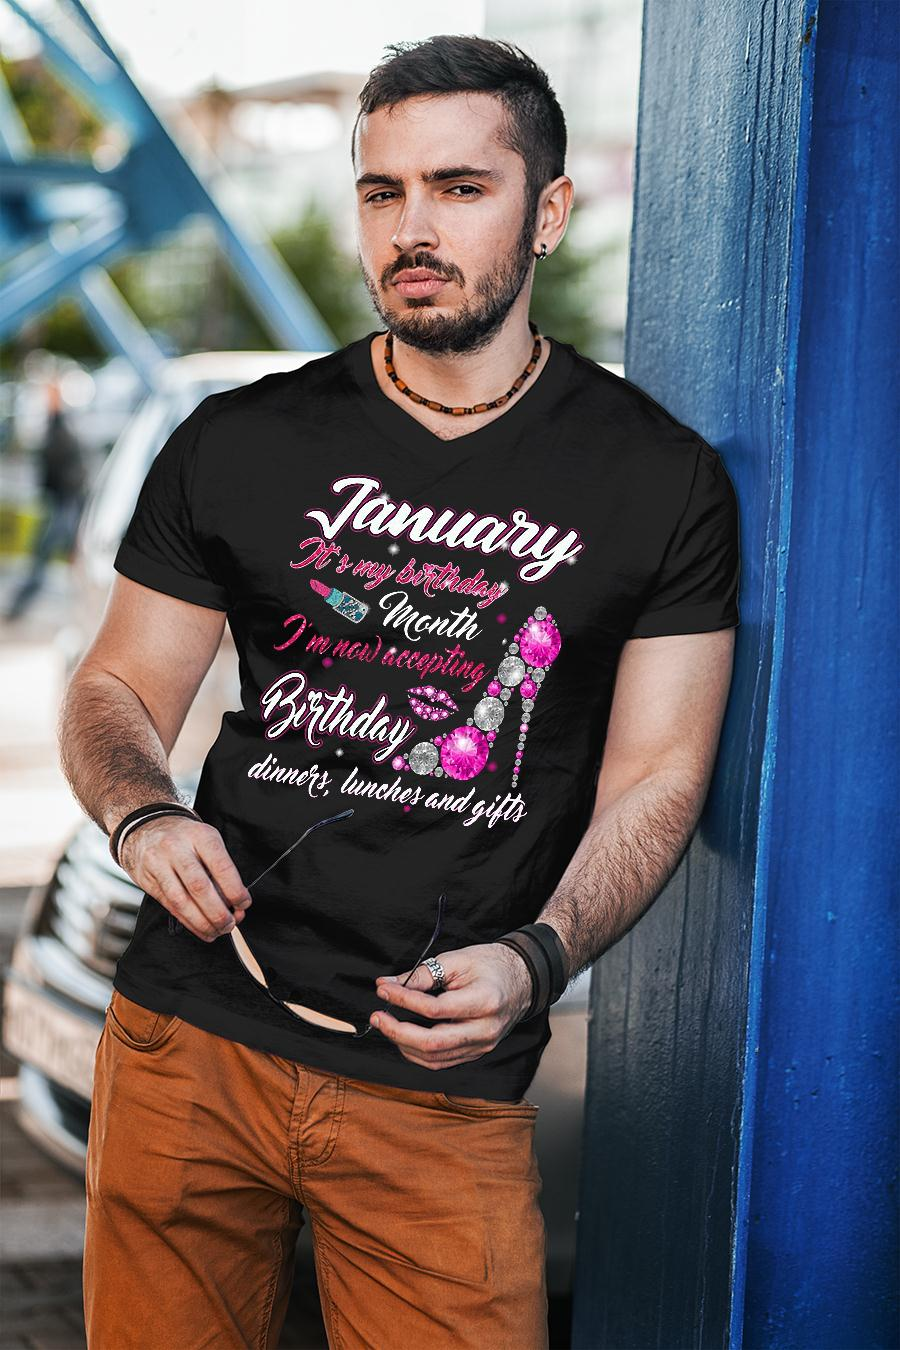 Shoes January It's my birthday month I'm now accepting Birthday dinners lunches and gifts shirt unisex